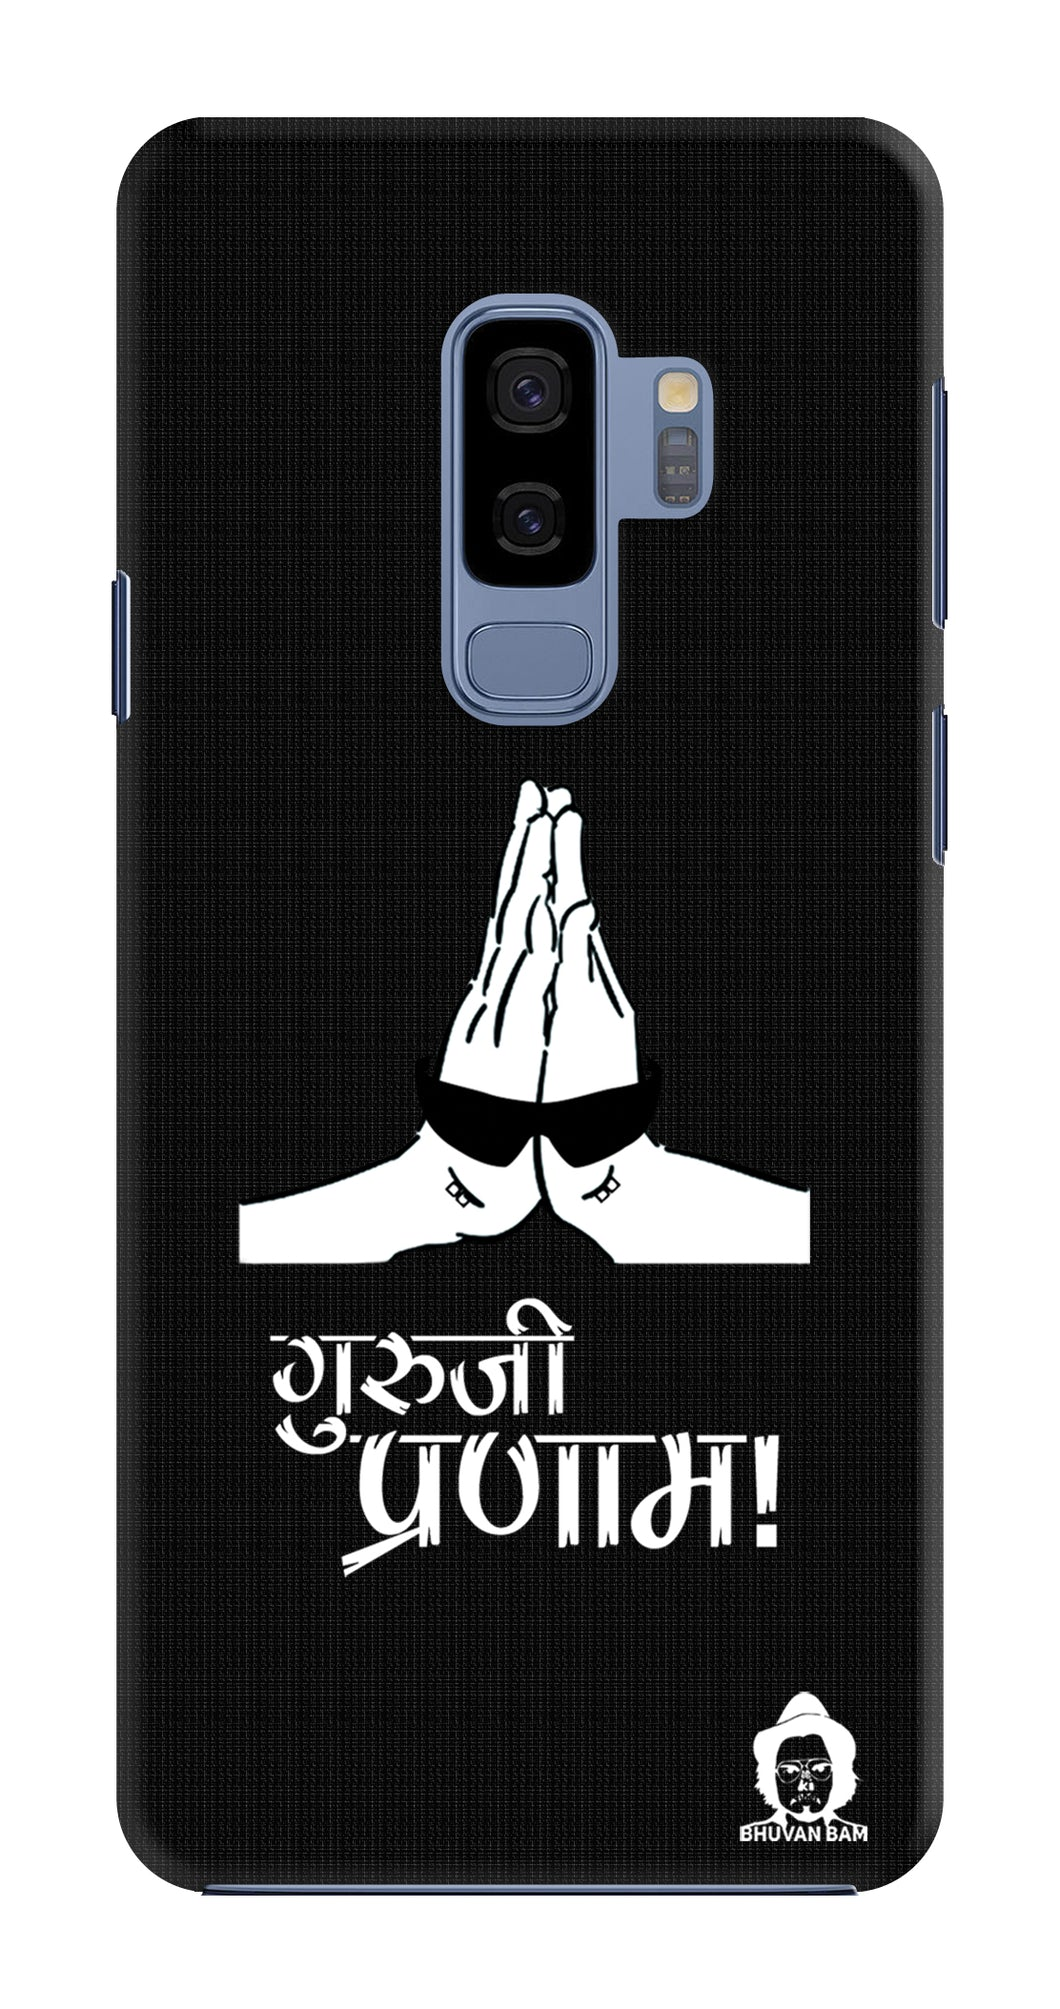 Guru-ji Pranam Edition for Samsung Galaxy S9 Plus